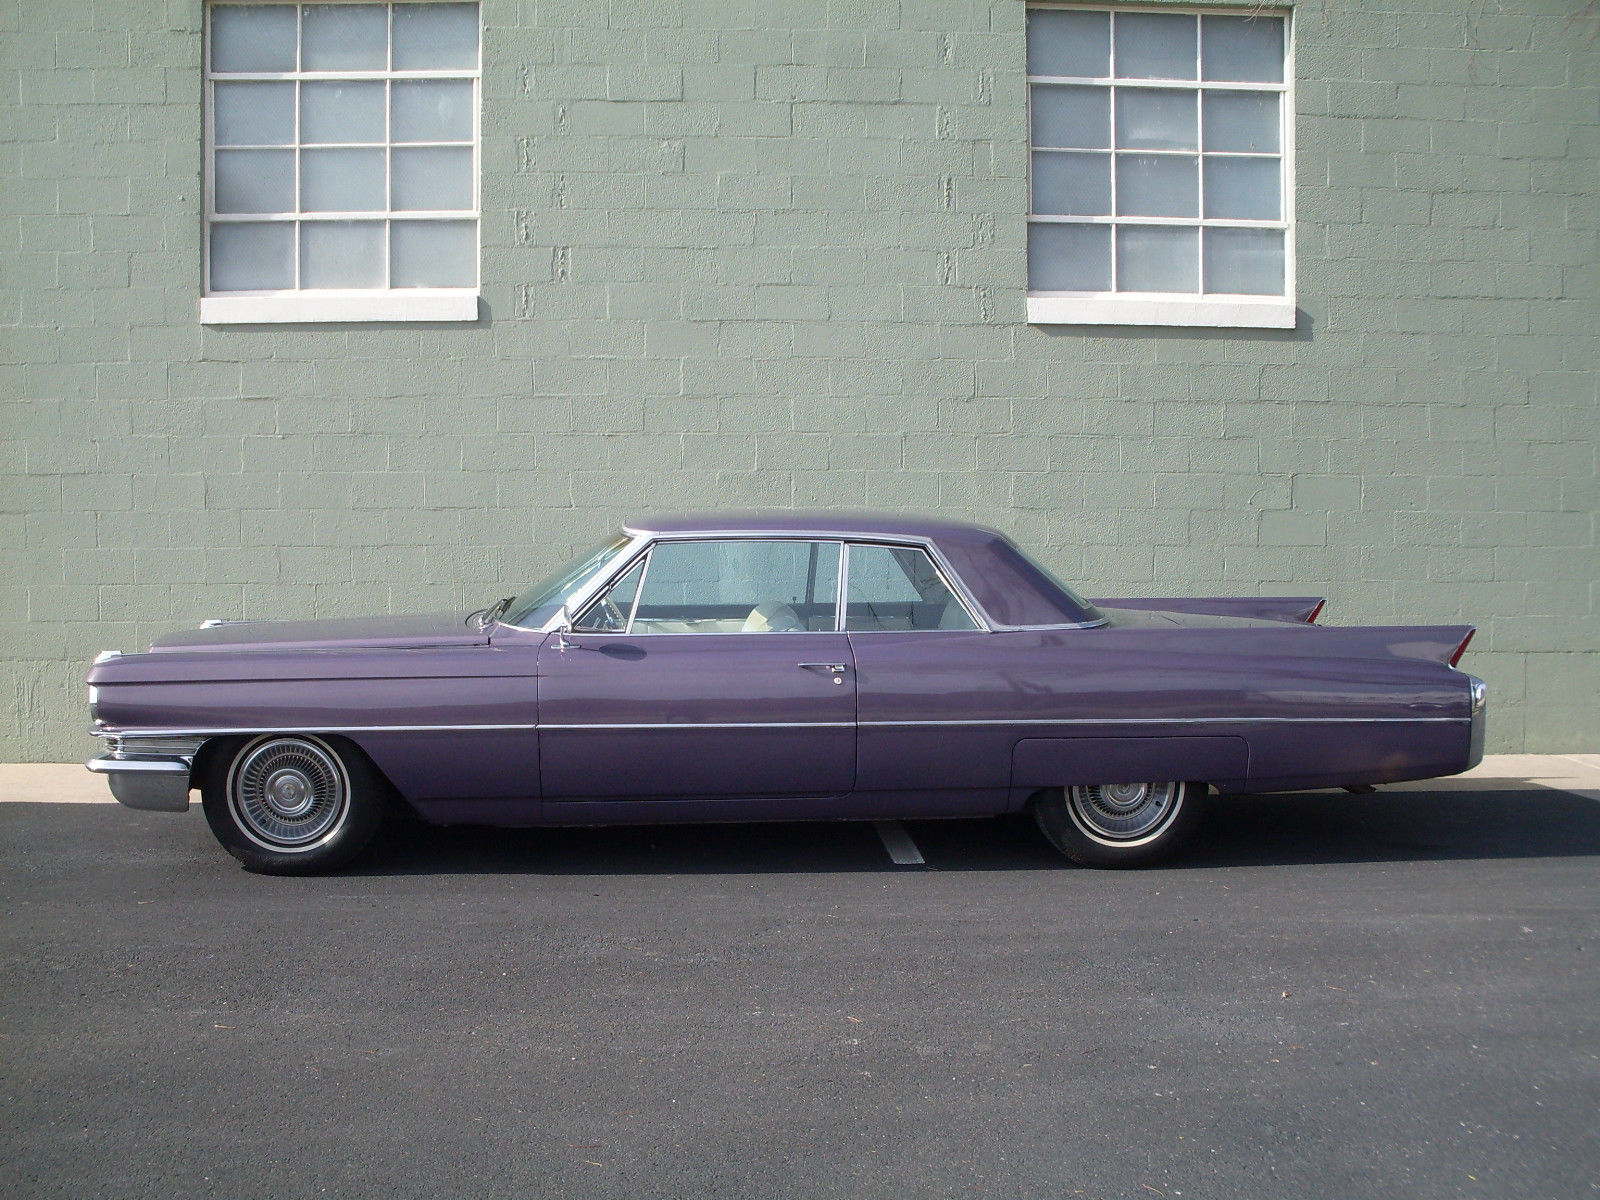 1963 Cadillac Series 62 Hardtop Rust Free Calif Car Ps Pw Pb Priced 1951 Coupe Other